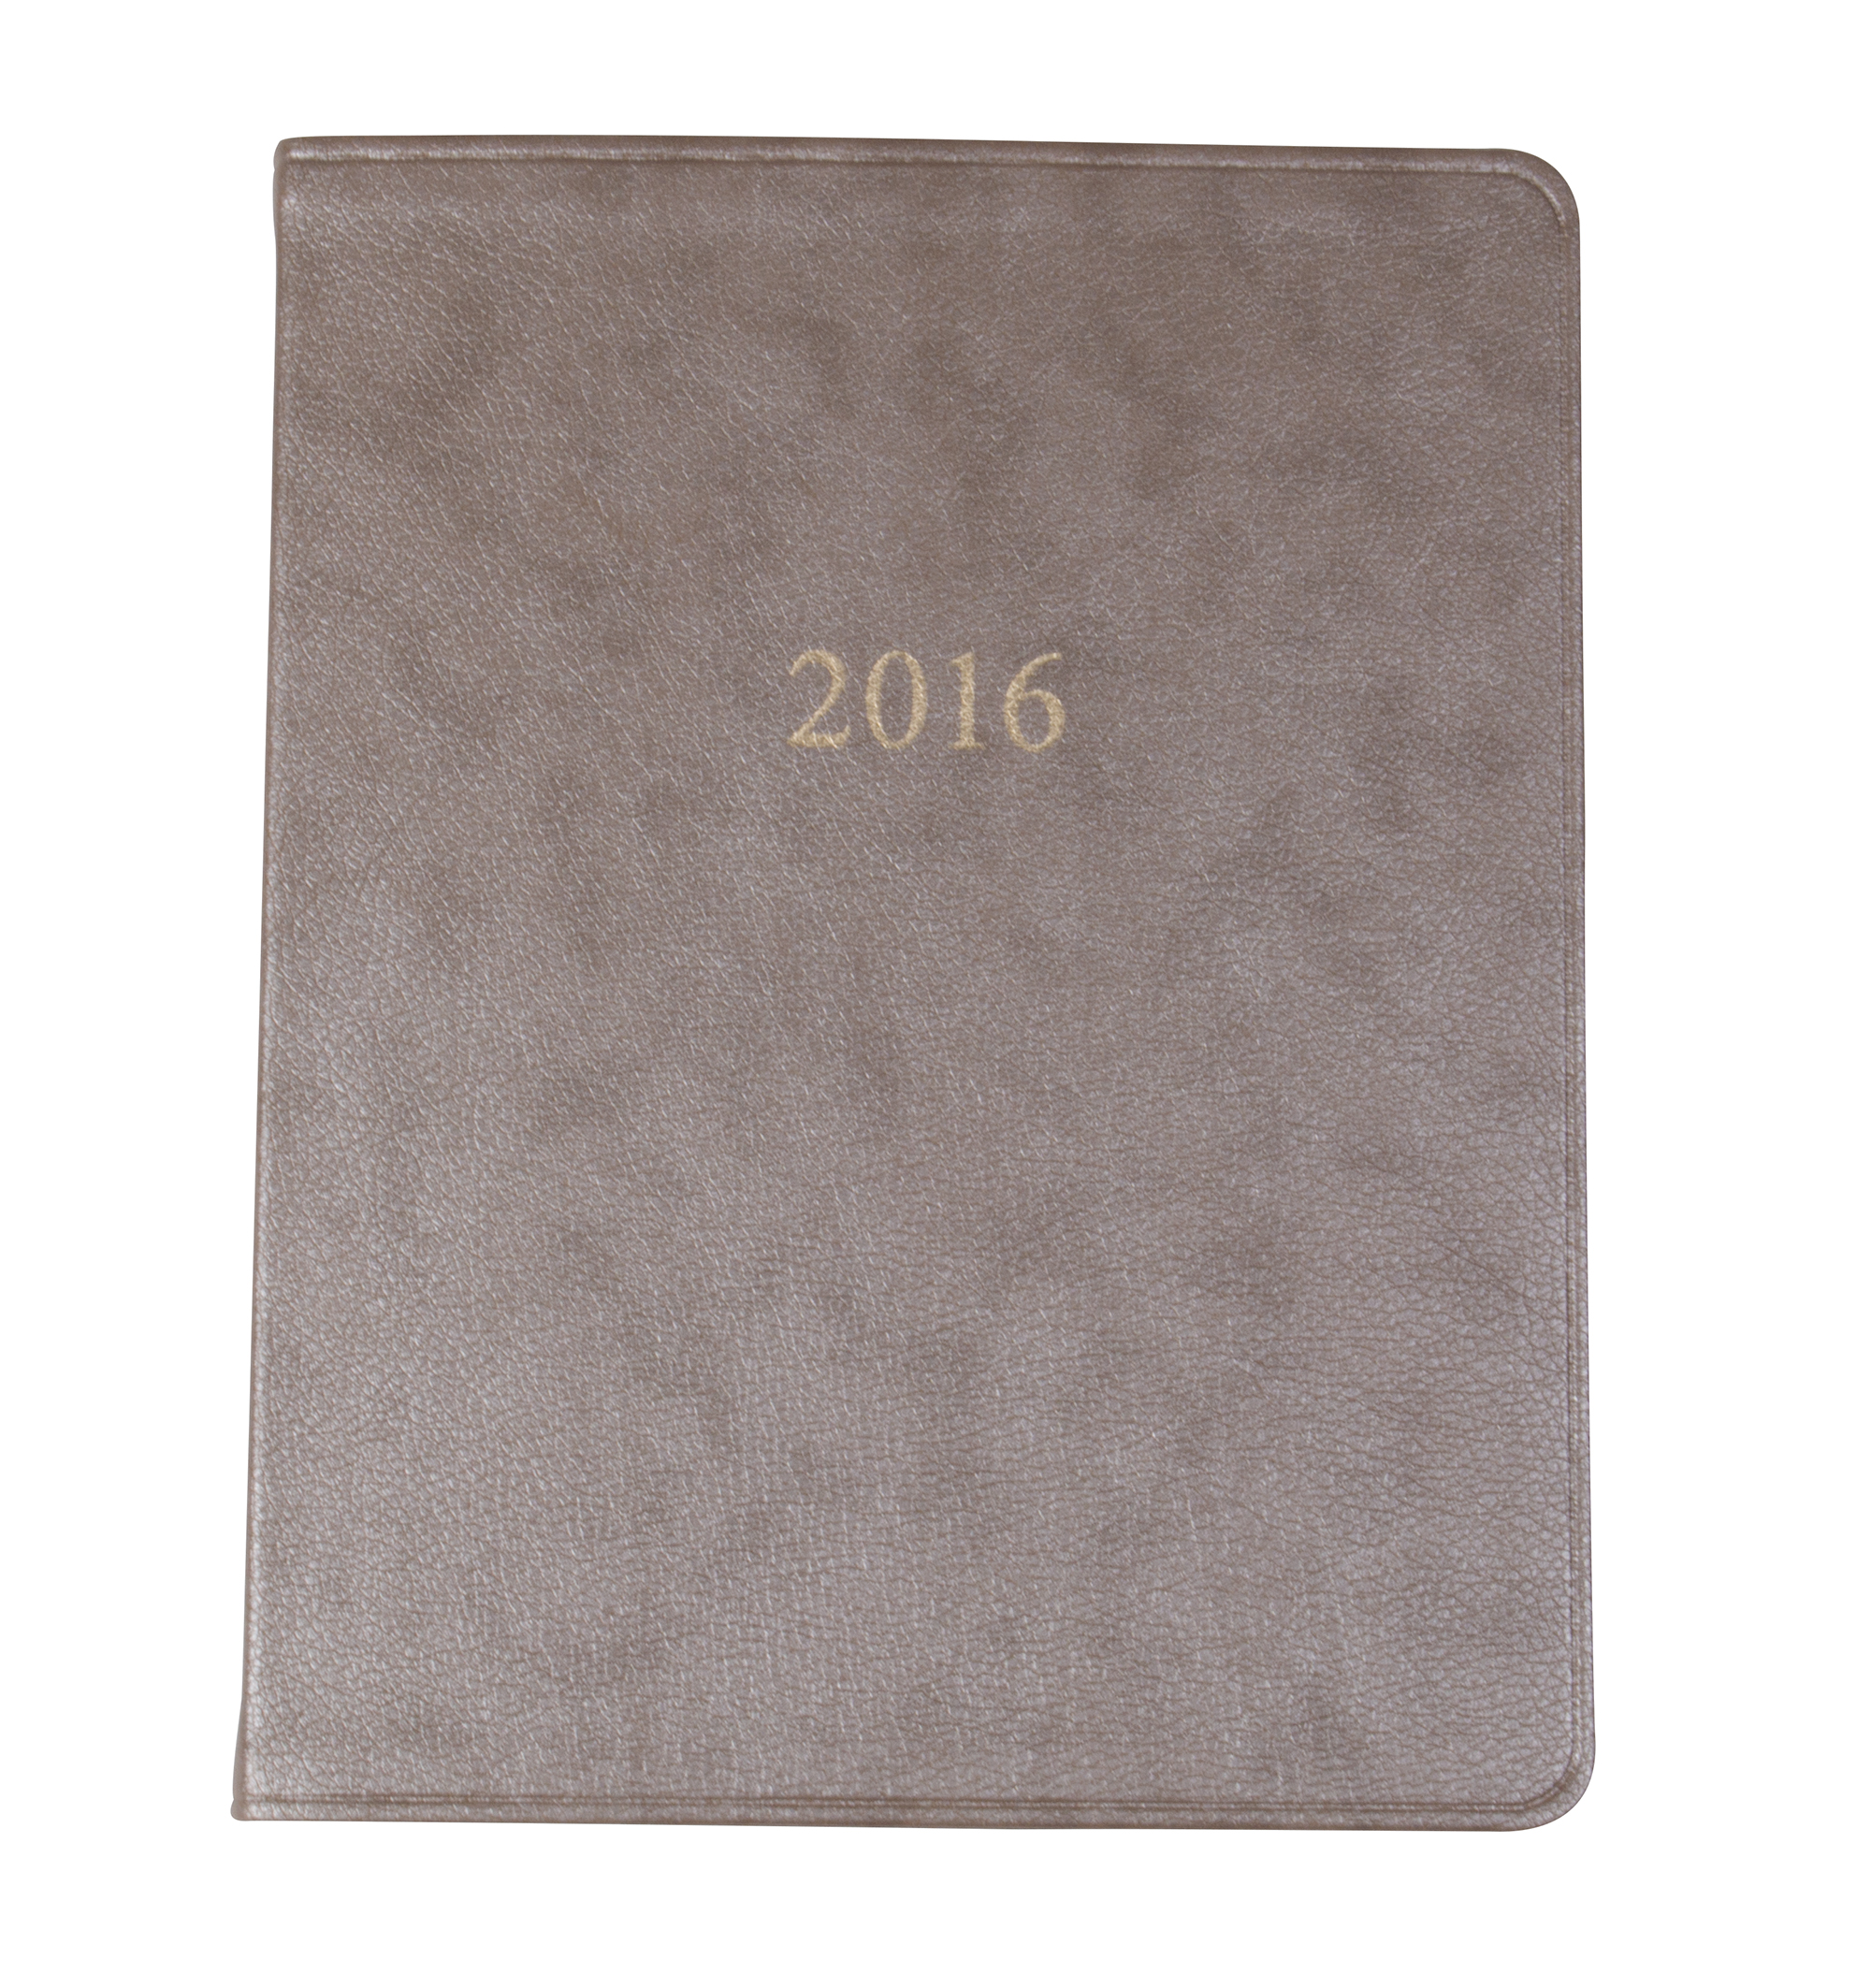 "Gallery Leather ""Key West Large Monthly Planner"" in ""Pearl Taupe,"" $20 at Barnes & Noble Towne Centre"